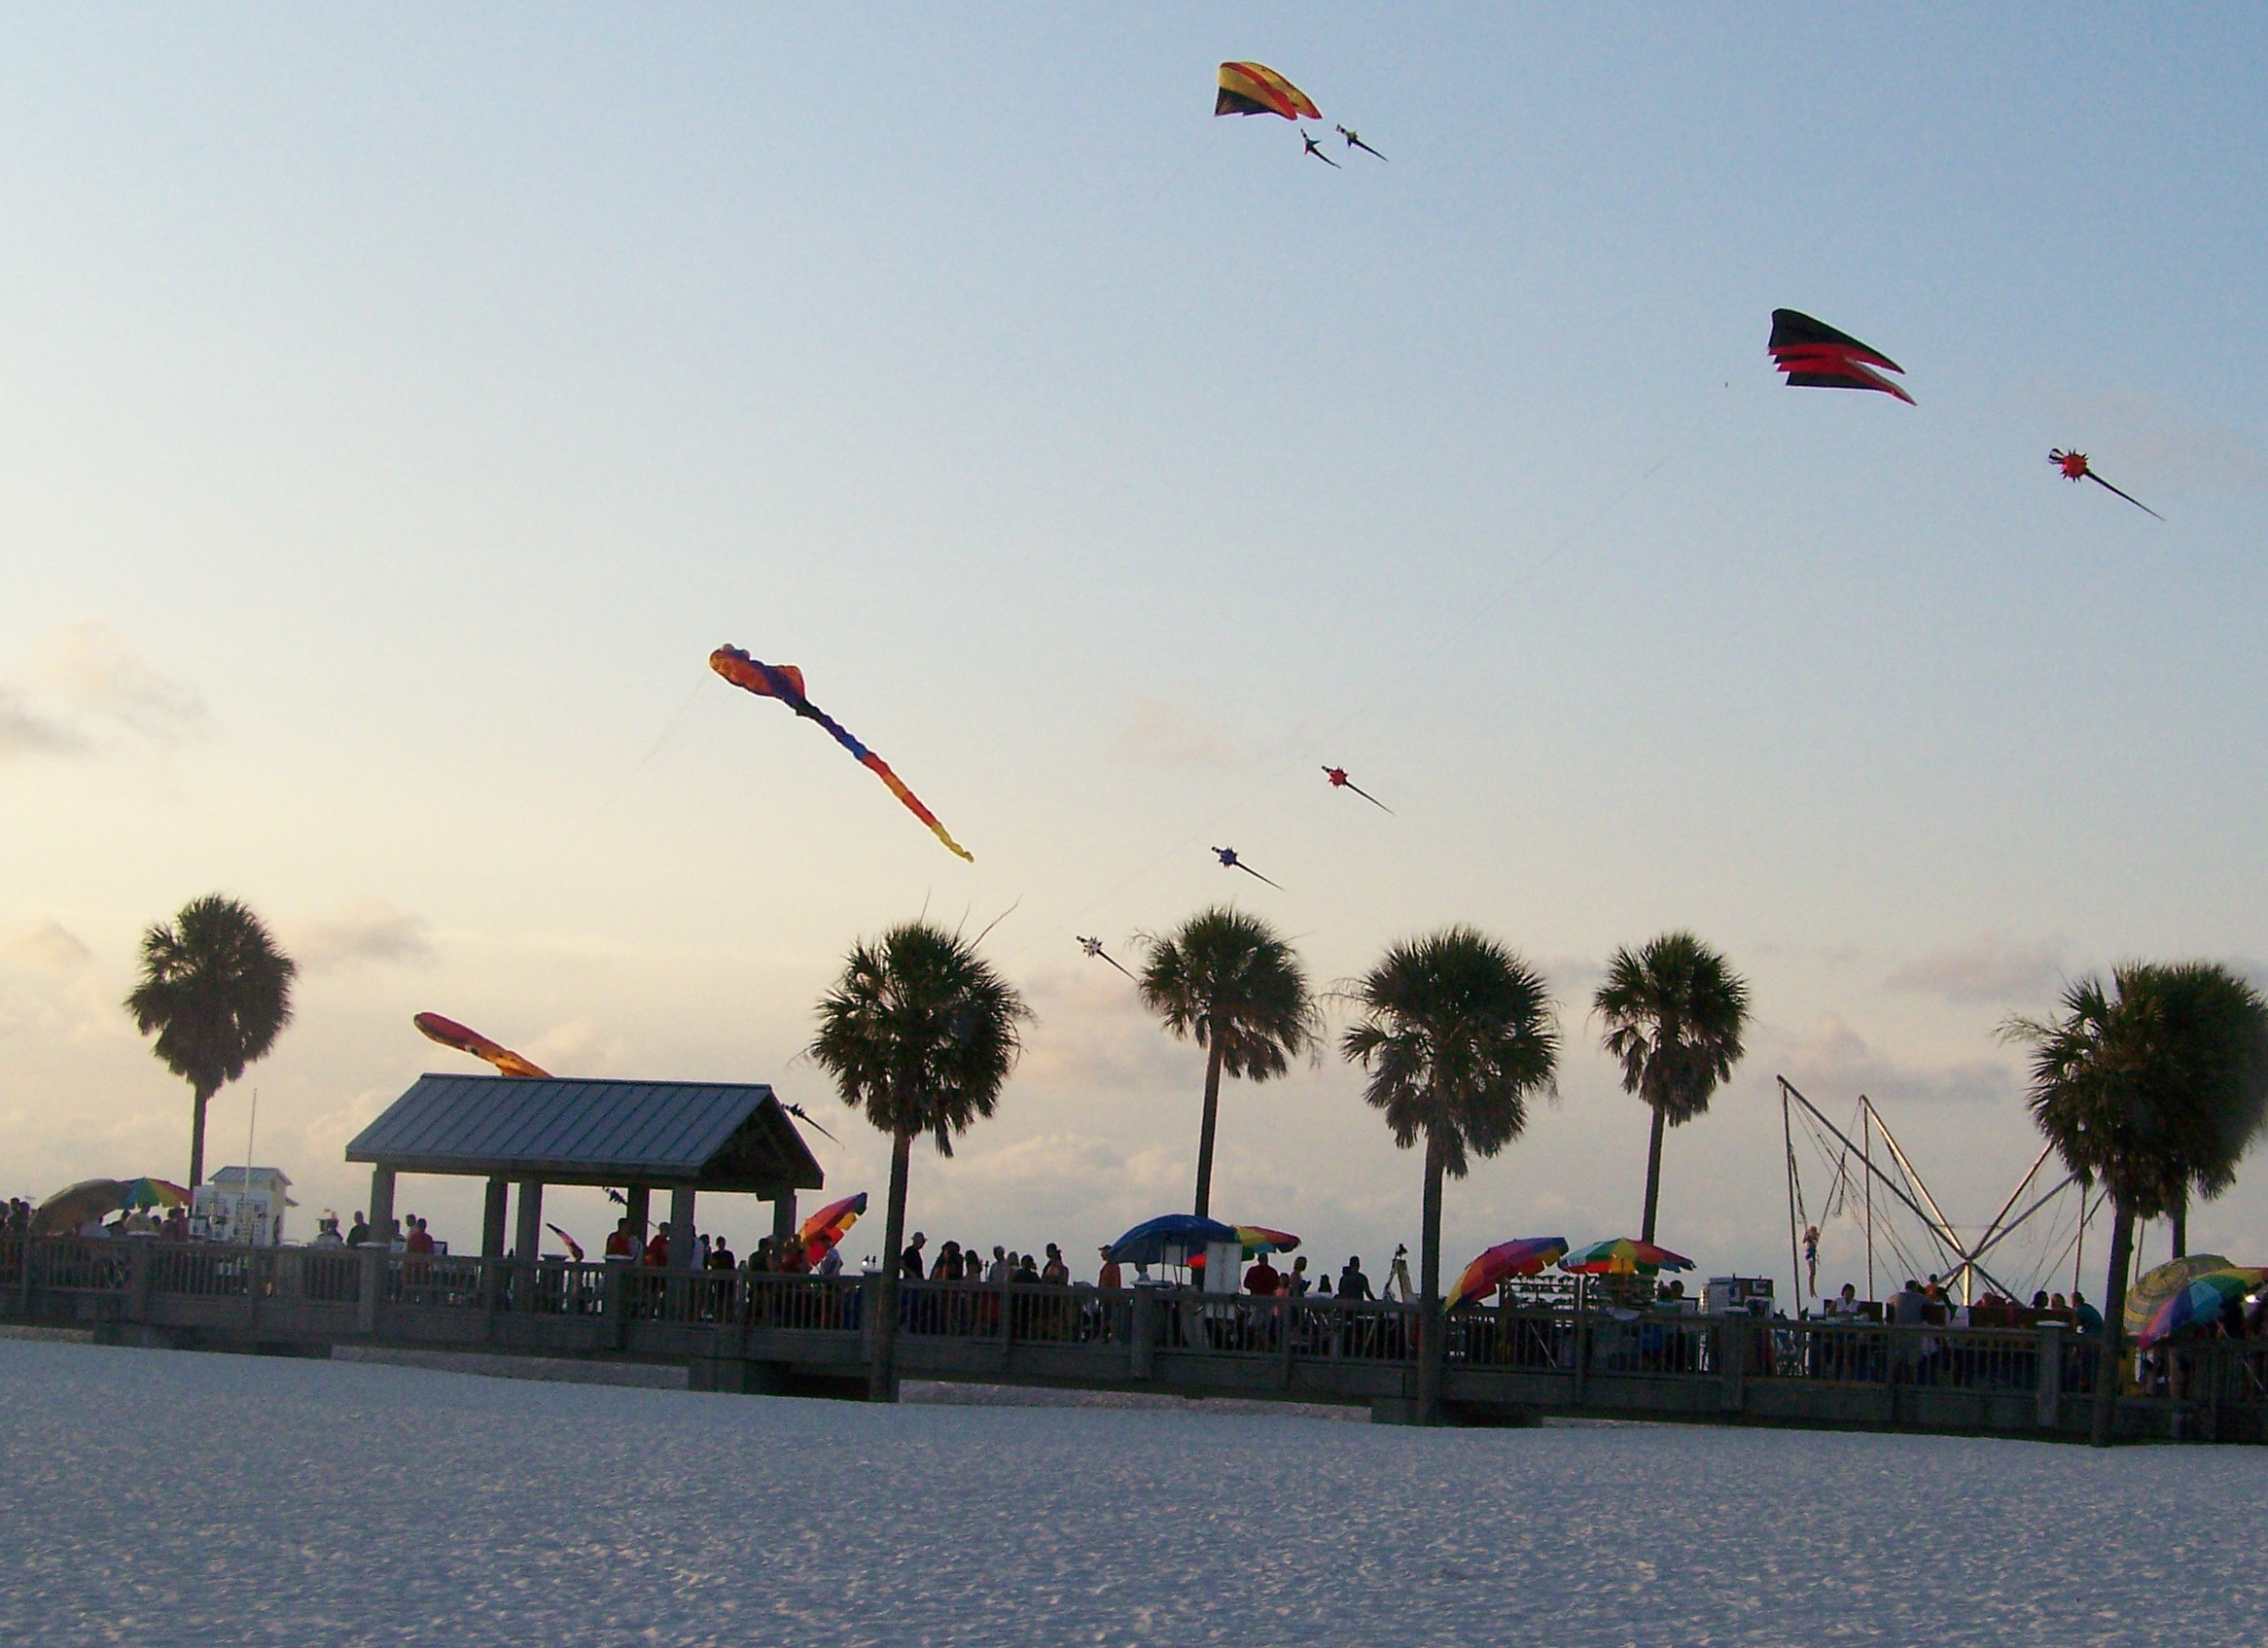 Kiting TampaBay flying kites in Clearwater! Come fly with us!